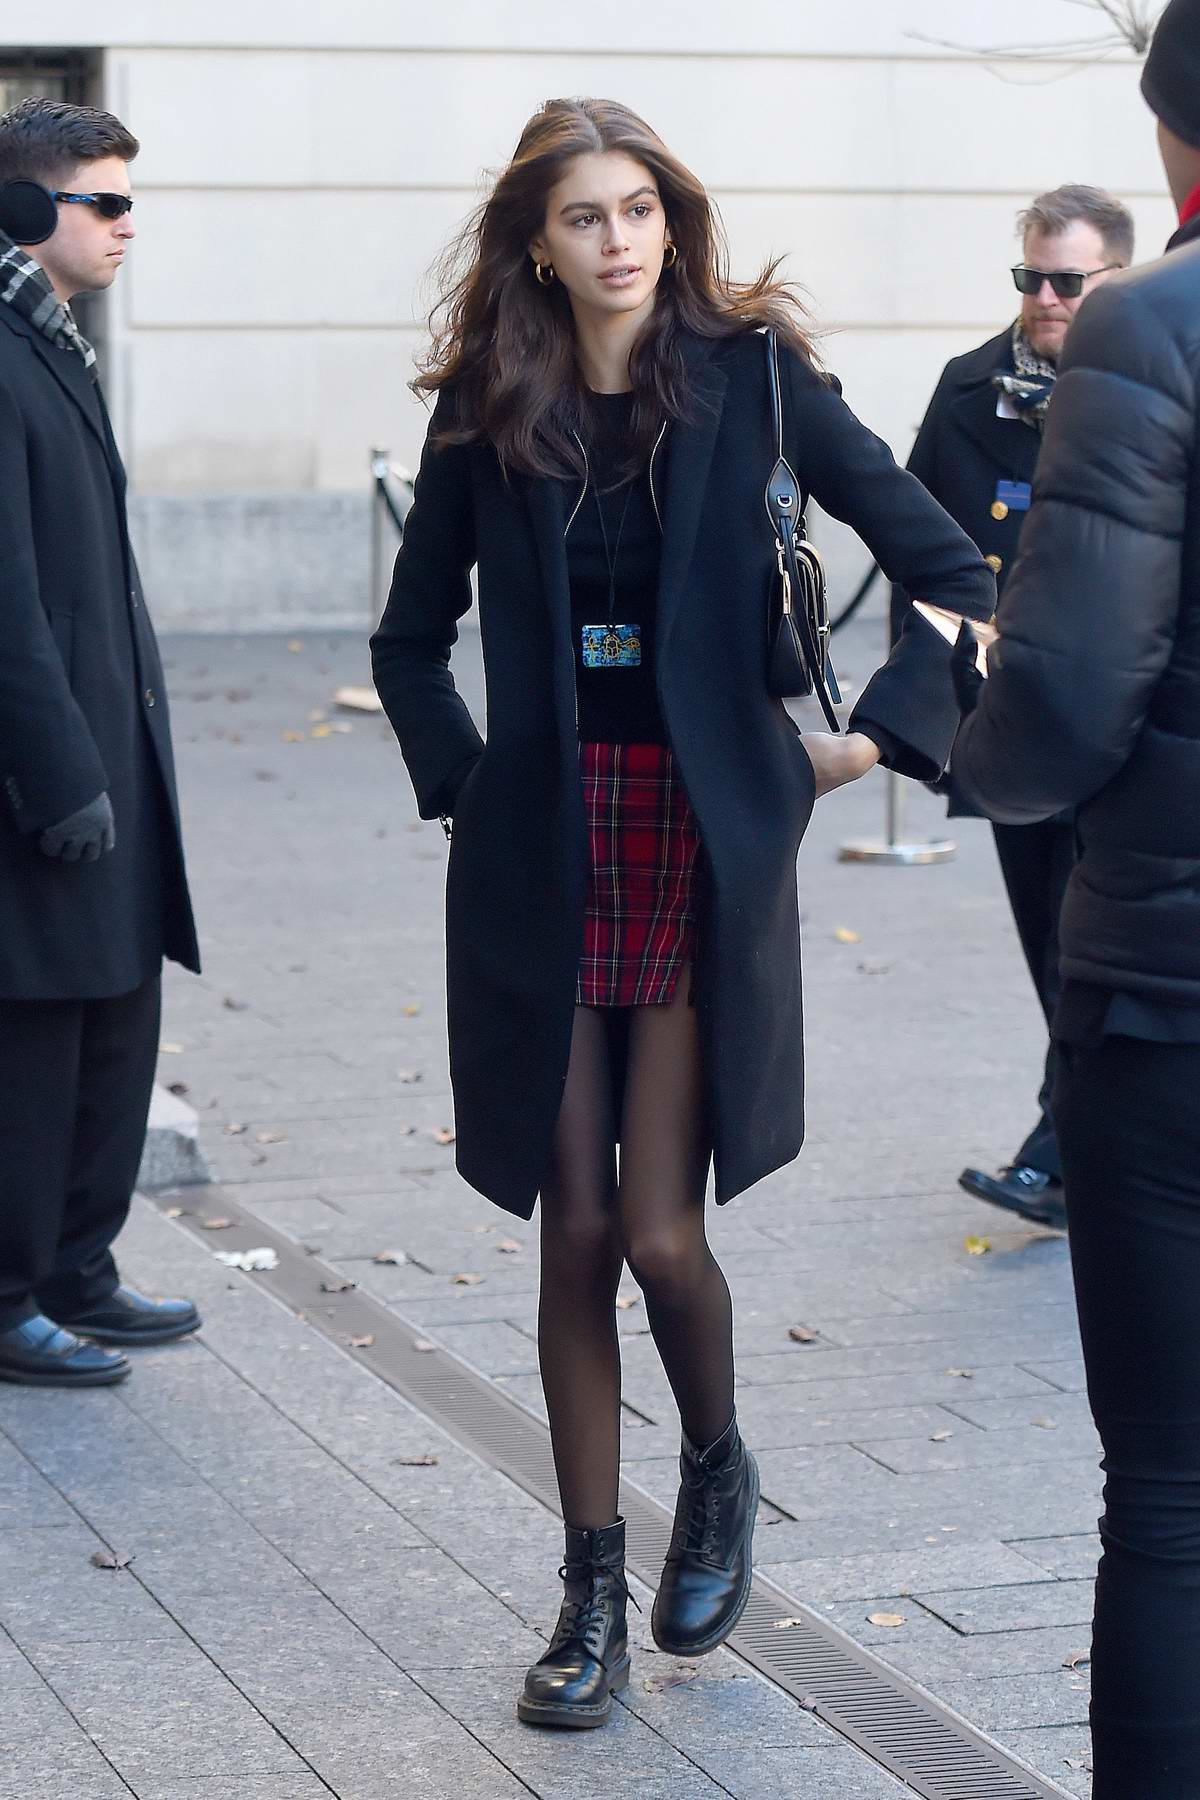 Kaia Gerber arrives for the Chanel Metiers d'Art Pre-Fall 2019 Fashion Show at Metropolitan Museum of Art in New York City